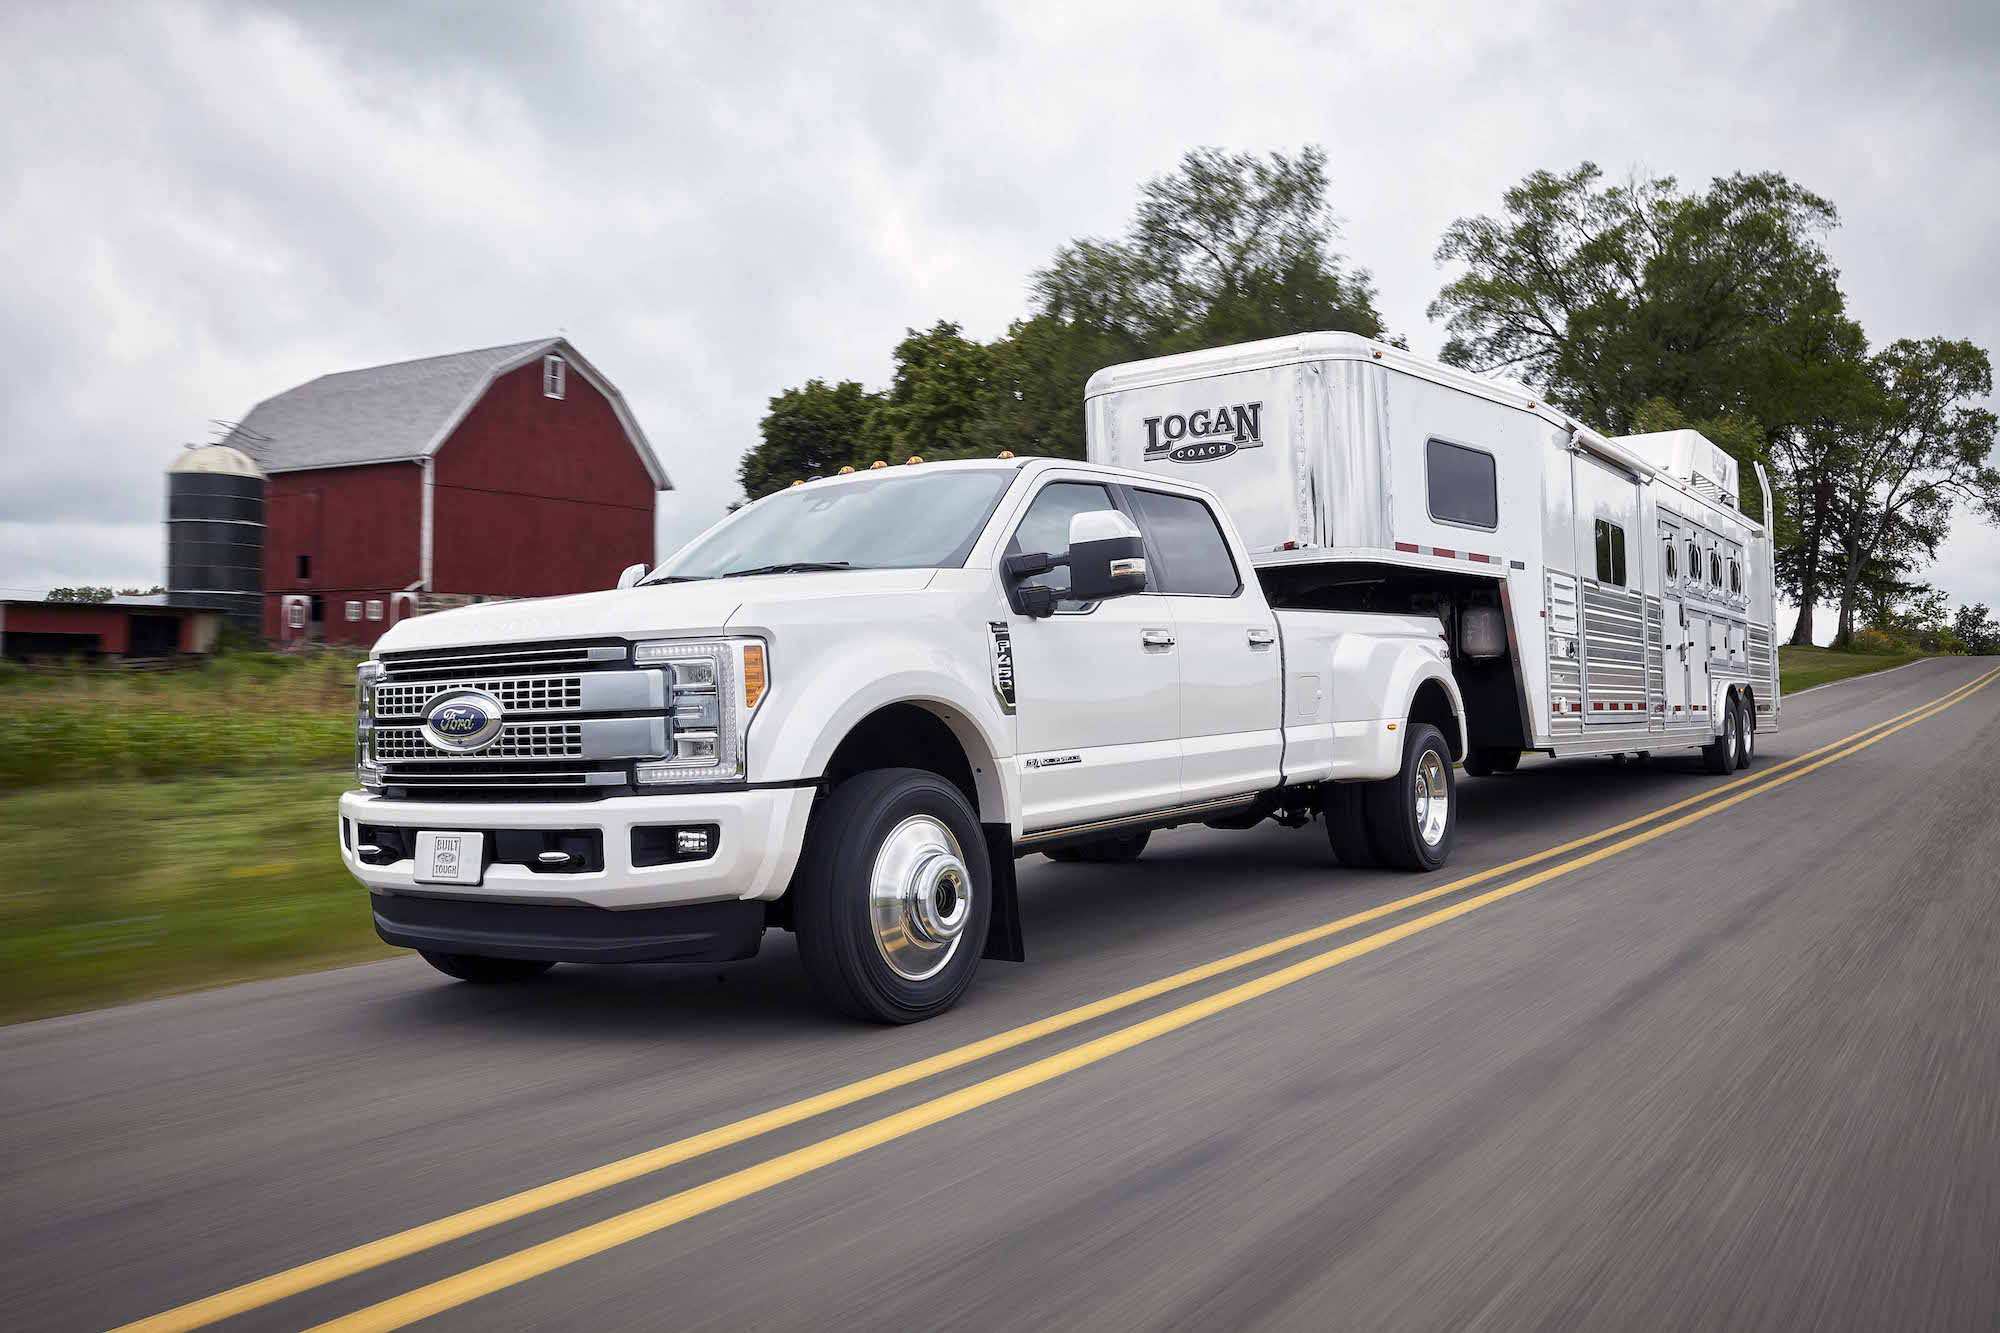 F350 dually towing capacity 2017 ford super duty overtakes ram 3500 as towing champ